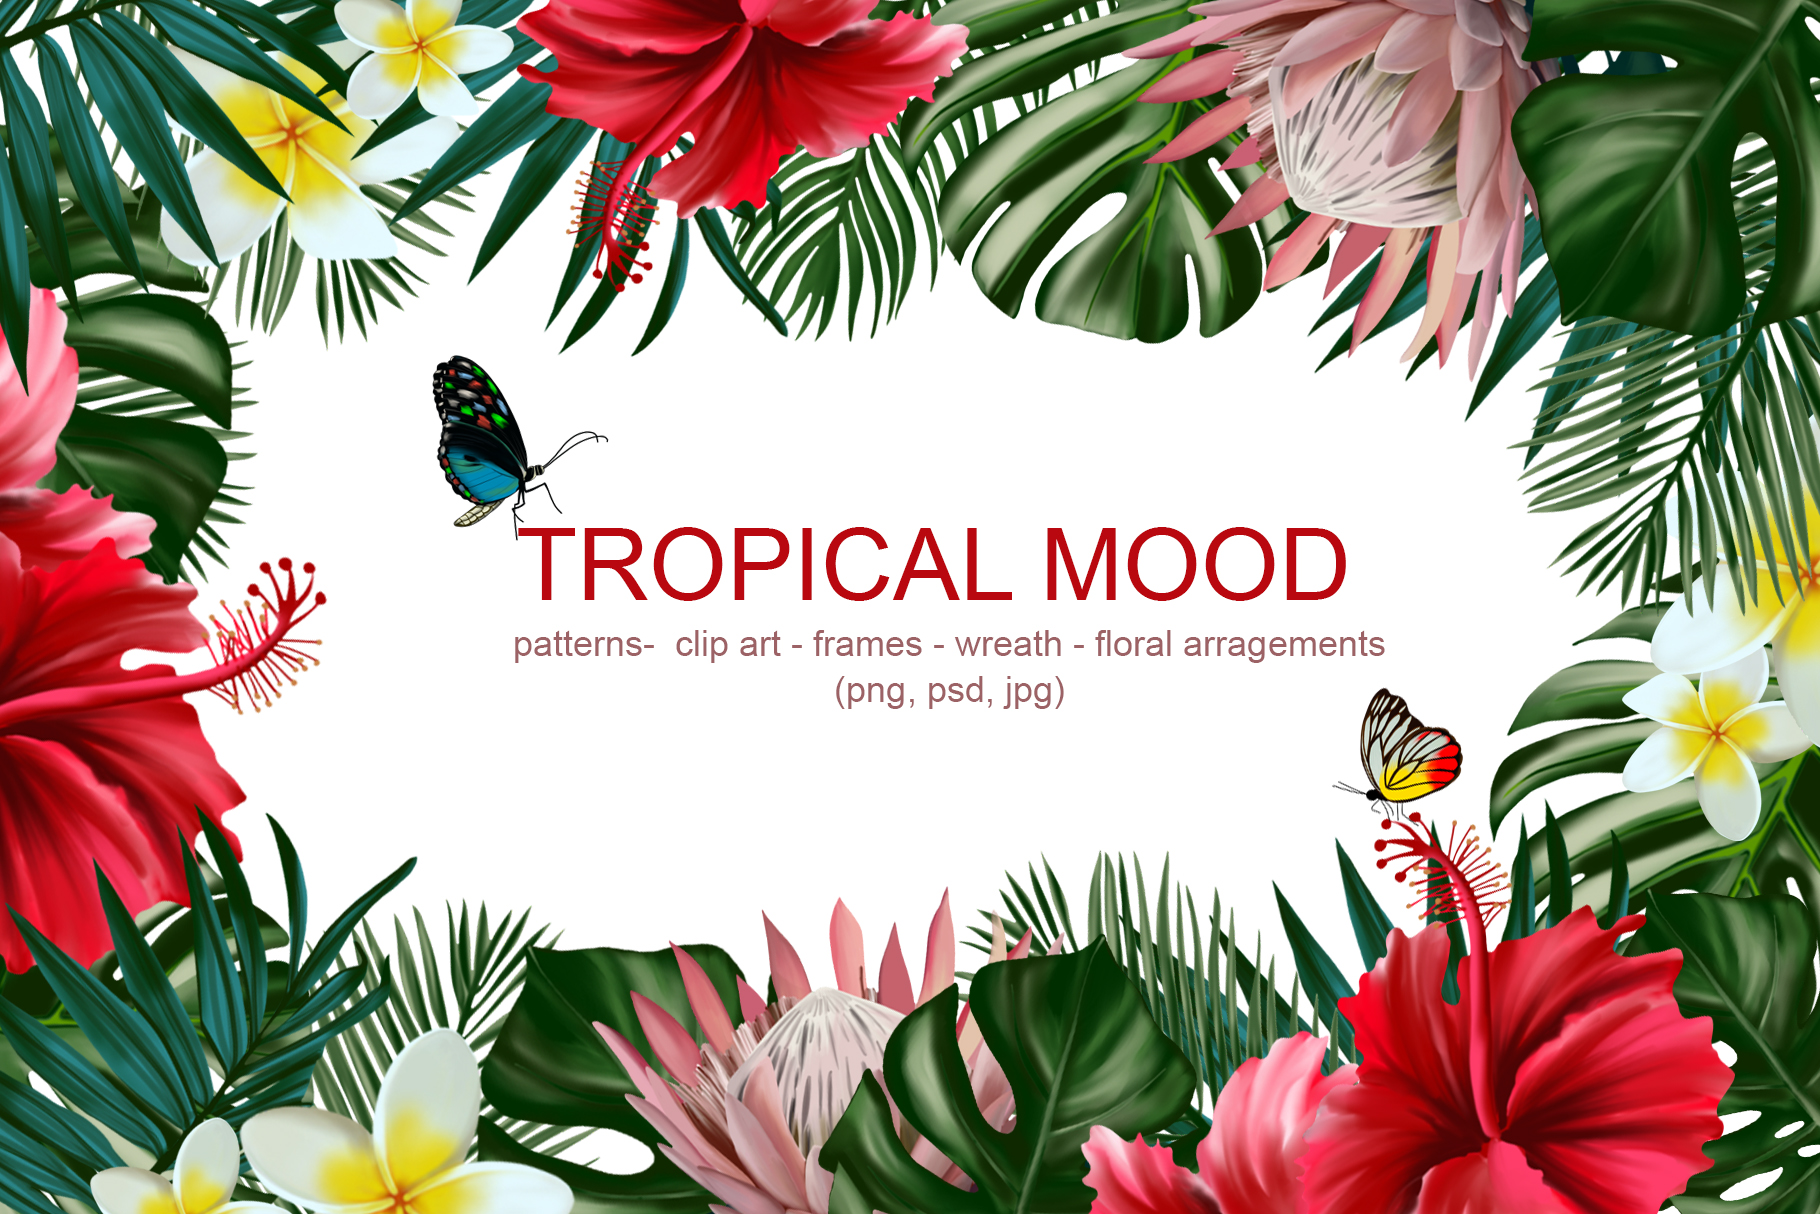 Download Free Tropical Mood Floral Collection Graphic By Vera Vero for Cricut Explore, Silhouette and other cutting machines.